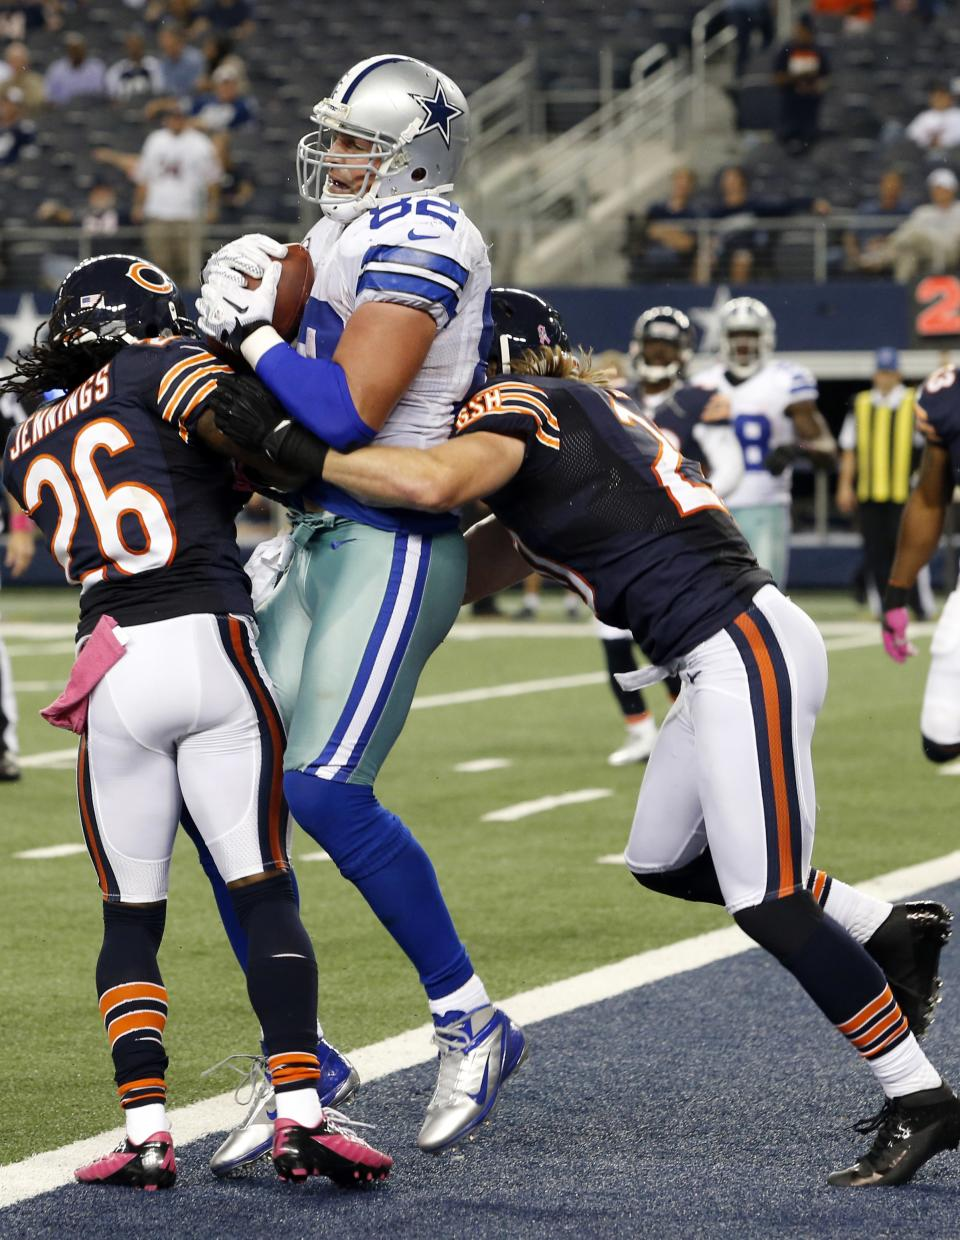 Dallas Cowboys tight end Jason Witten (82) makes a touchdown reception between Chicago Bears cornerback Tim Jennings (26) and strong safety Craig Steltz (20) during the second half of an NFL football game, Monday, Oct. 1, 2012 in Arlington, Texas. (AP Photo/Sharon Ellman)